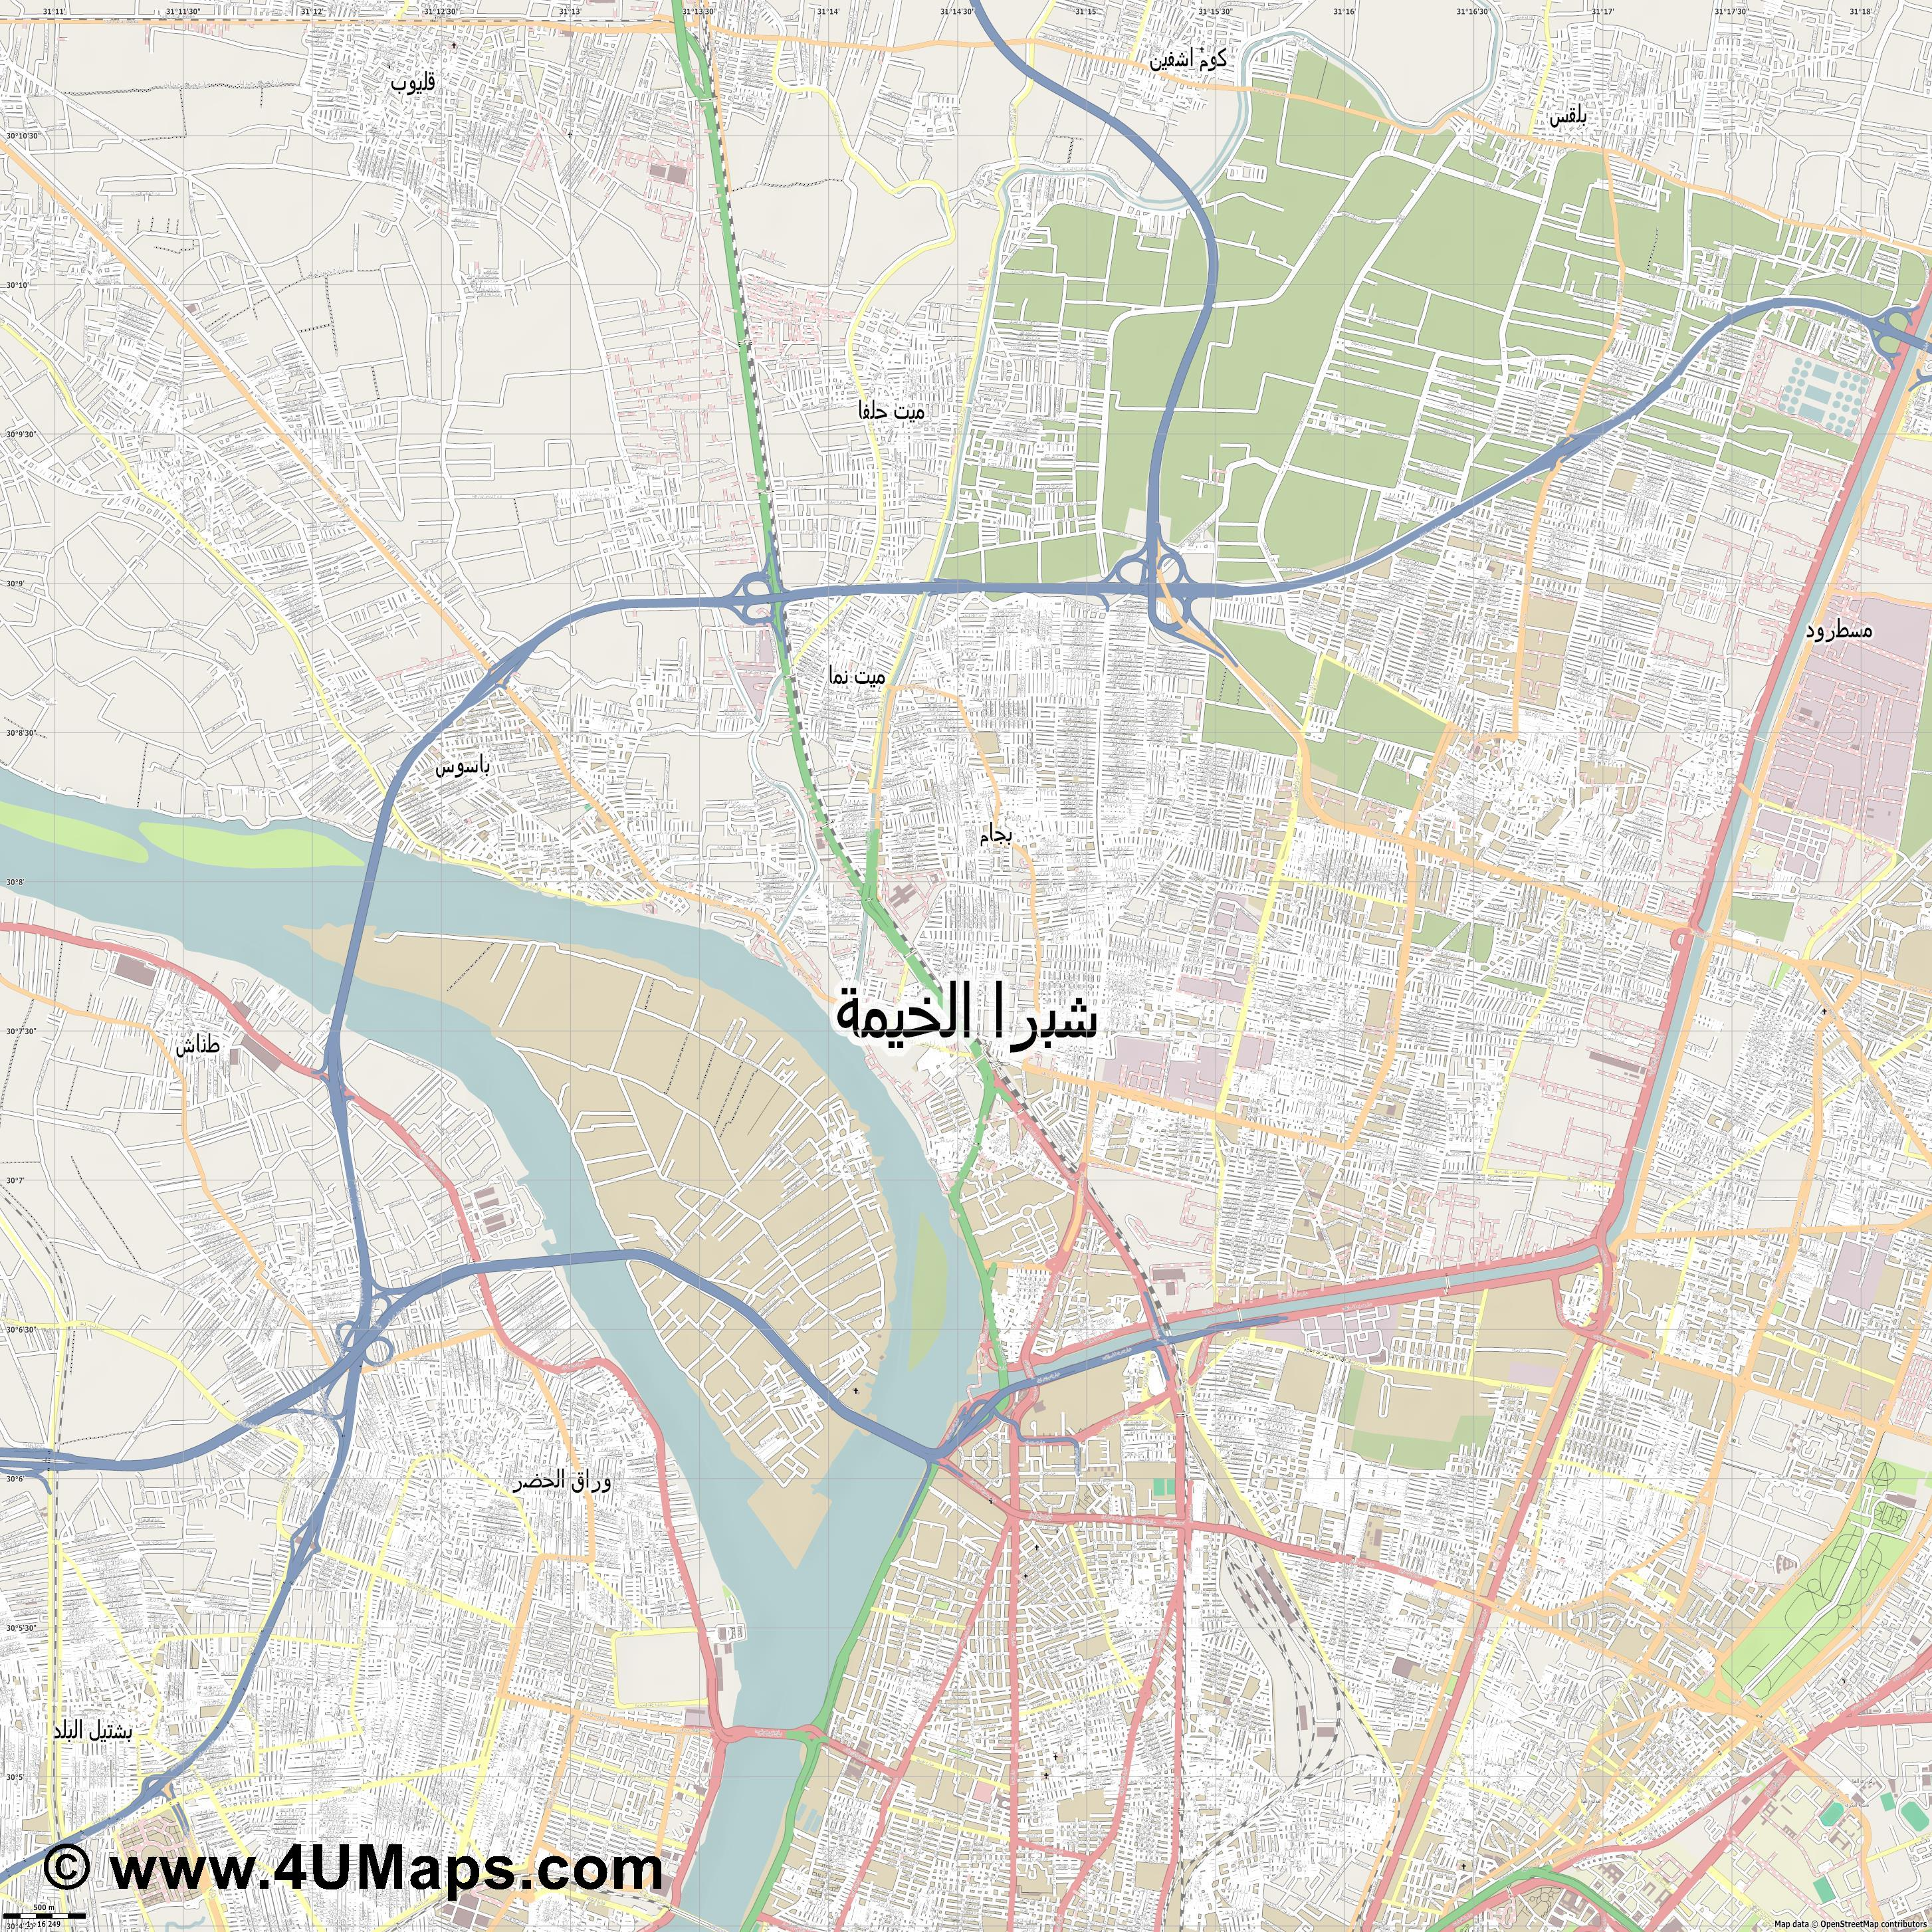 شبرا الخيمة Shubra al Khayma  jpg ultra high detail preview vector city map